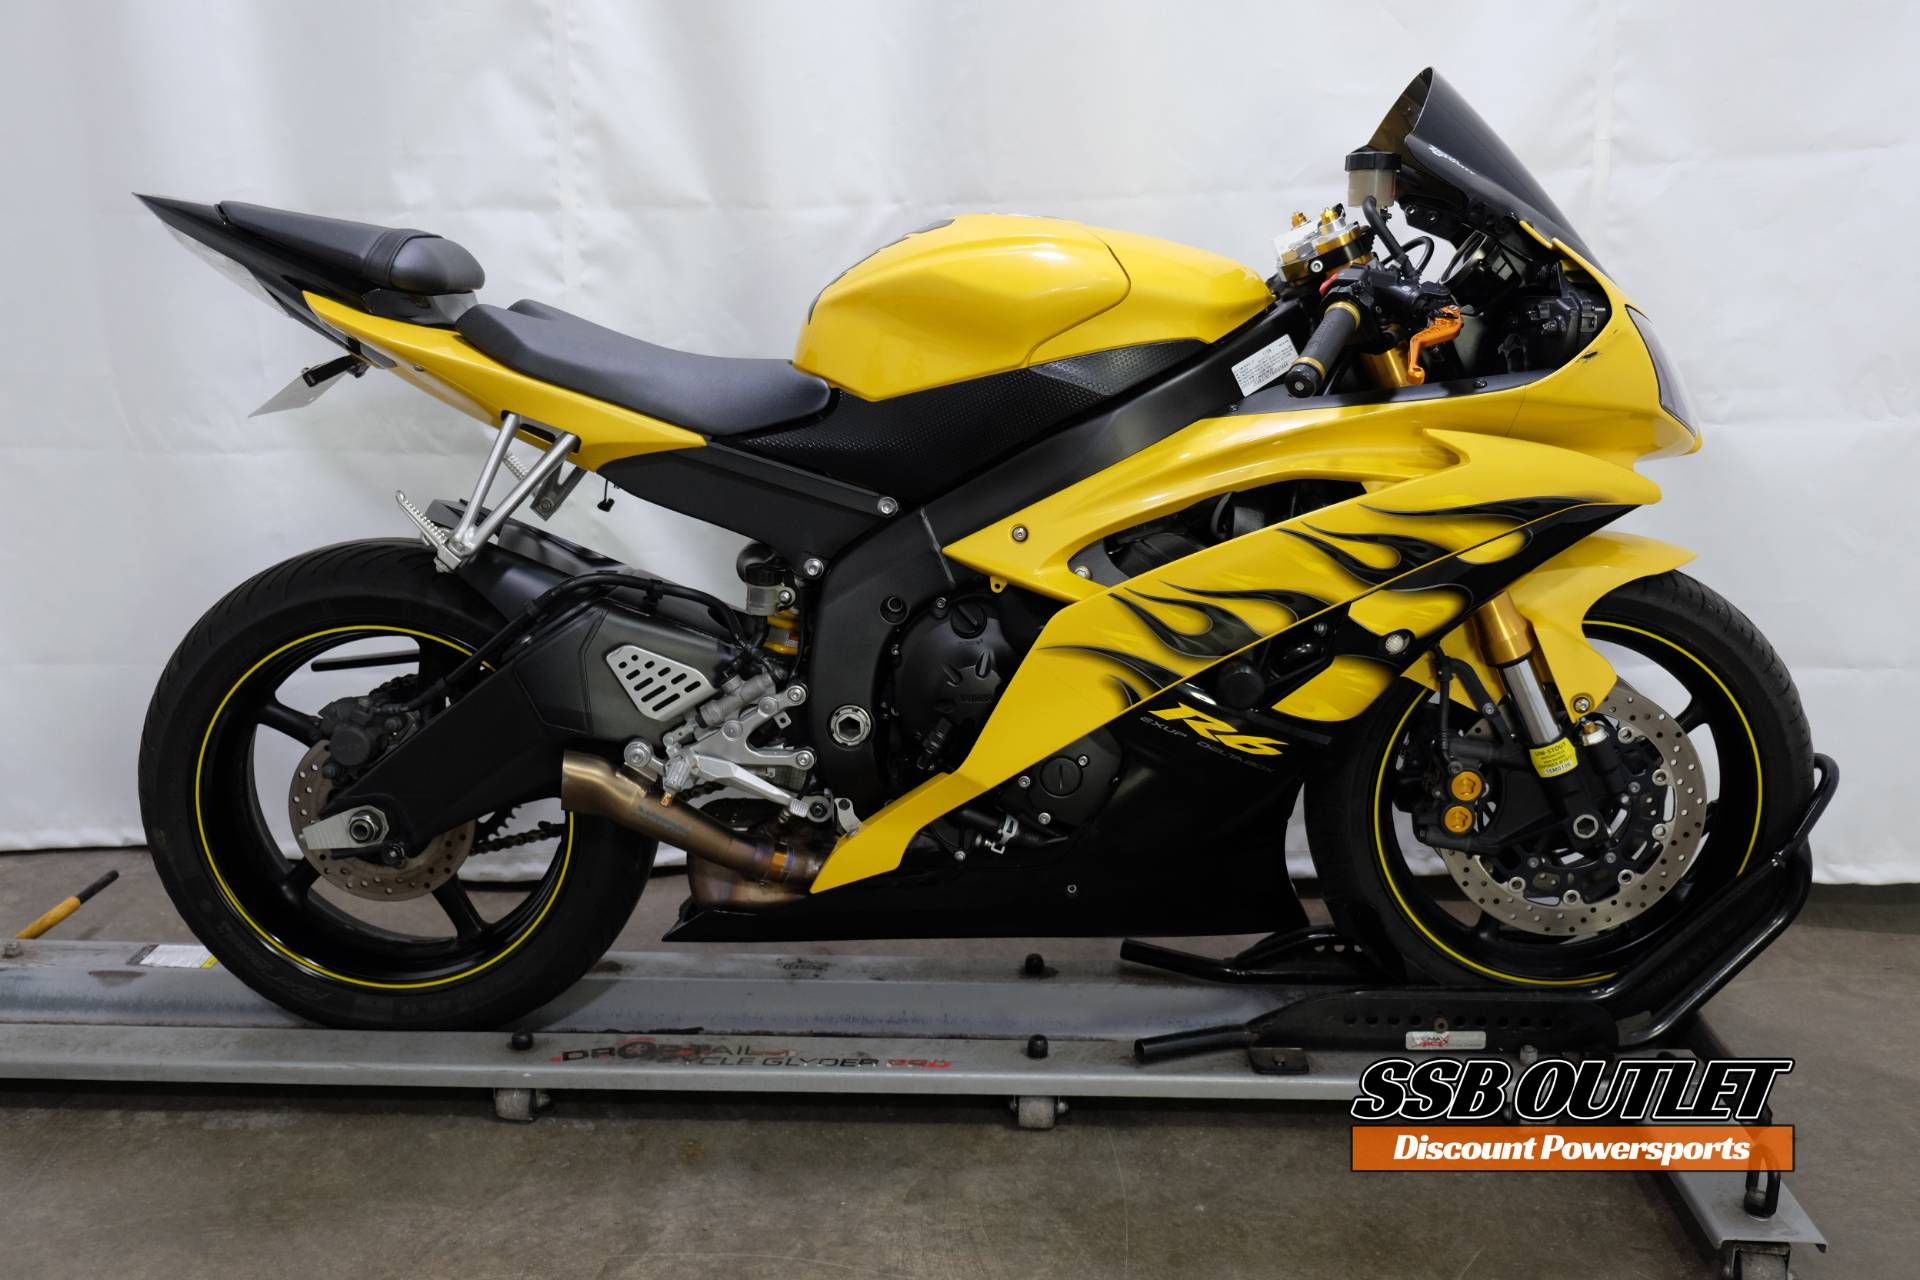 2008 Yamaha YZF-R6 for sale 165194